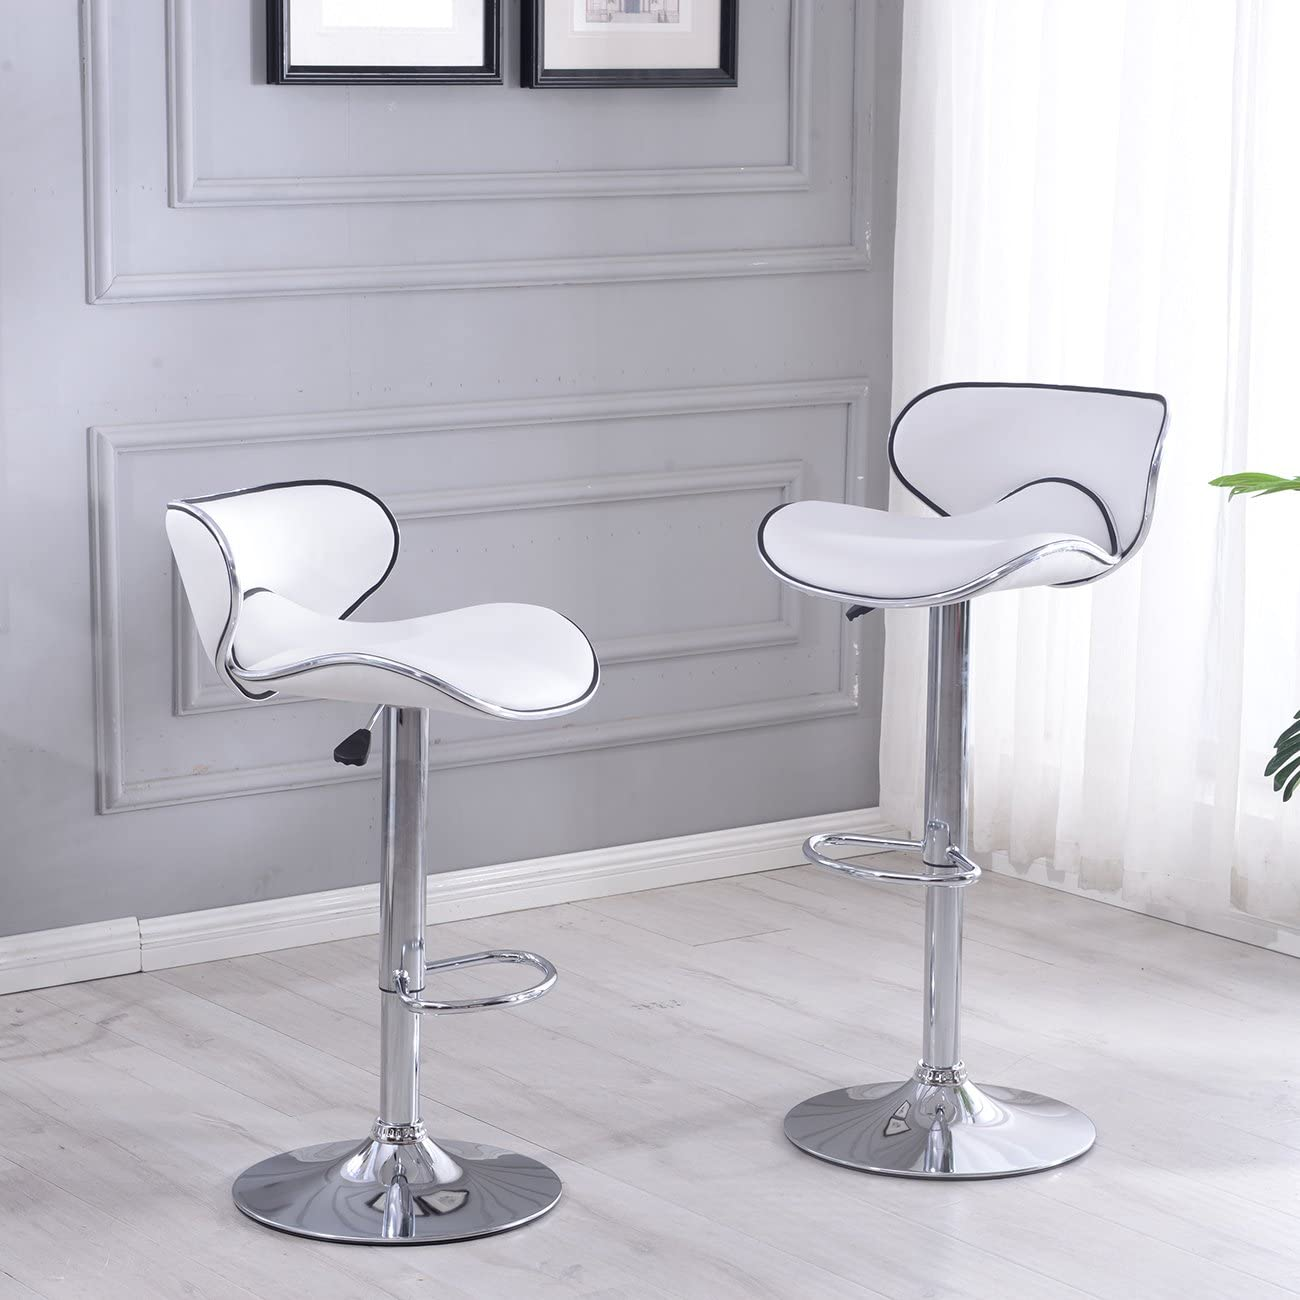 Belleze Modern Retro Adjustable White Faux Leather Swivel Bar Stools Chairs w Footrest, Sets of 2